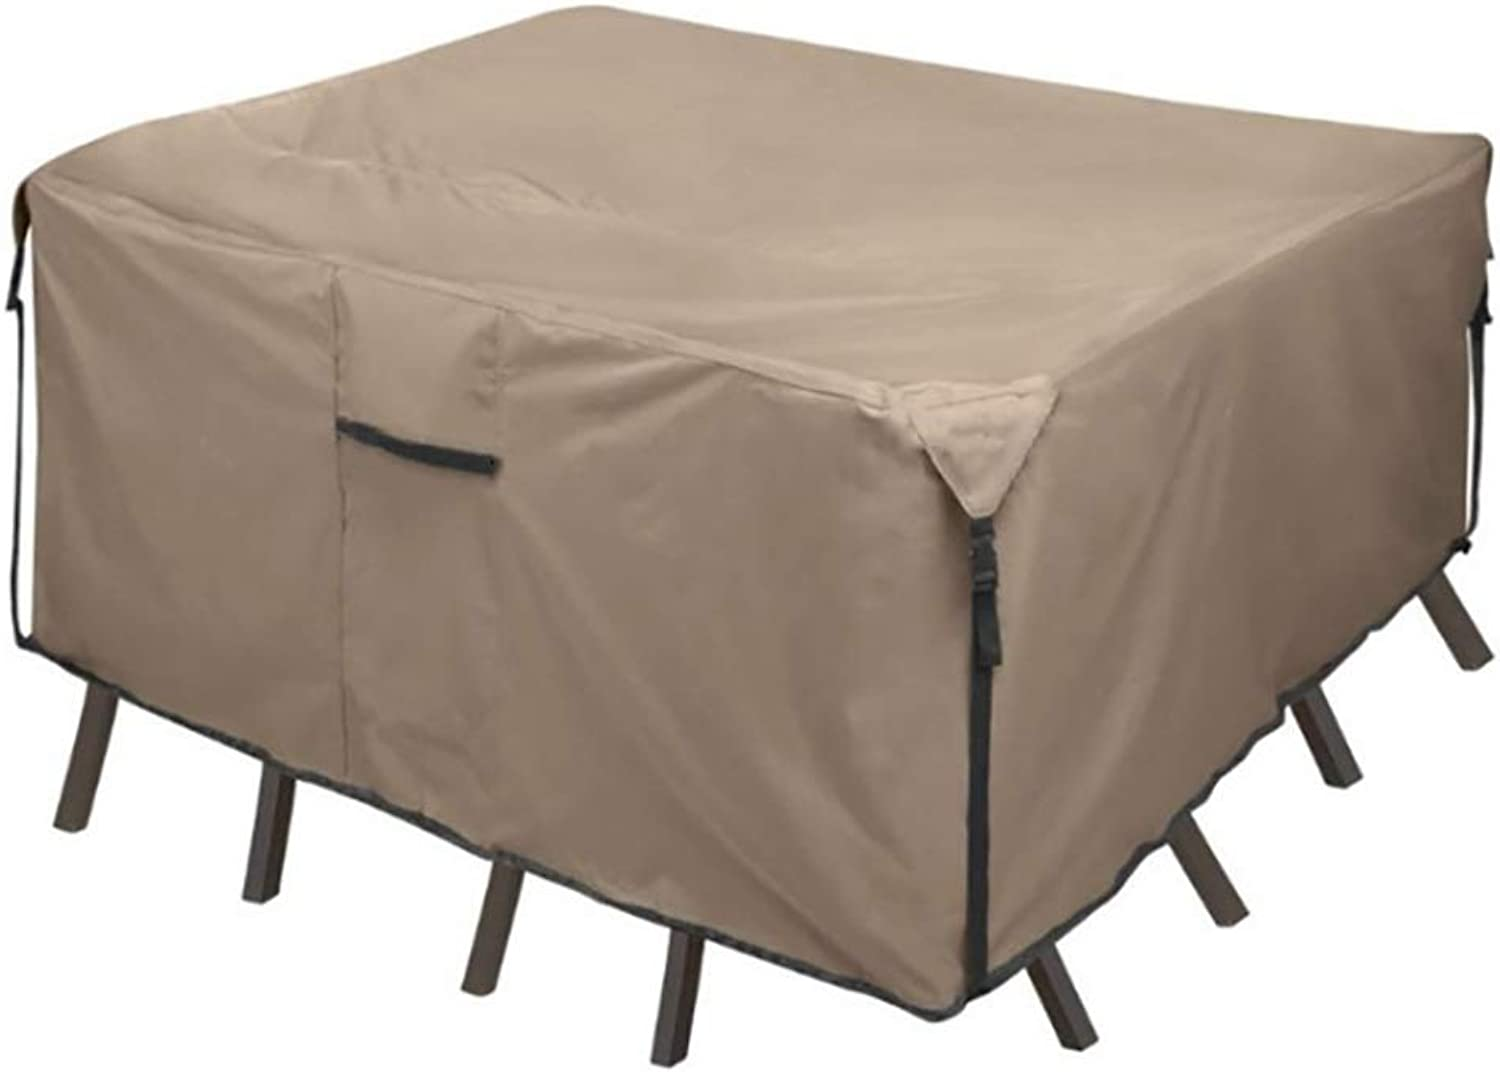 Patio Furniture Set Covers Patio Waterproof Furniture Set Cover, Heavy Duty Garden Square Table and Chair Predector, XX-Large Chair Sofa Cover